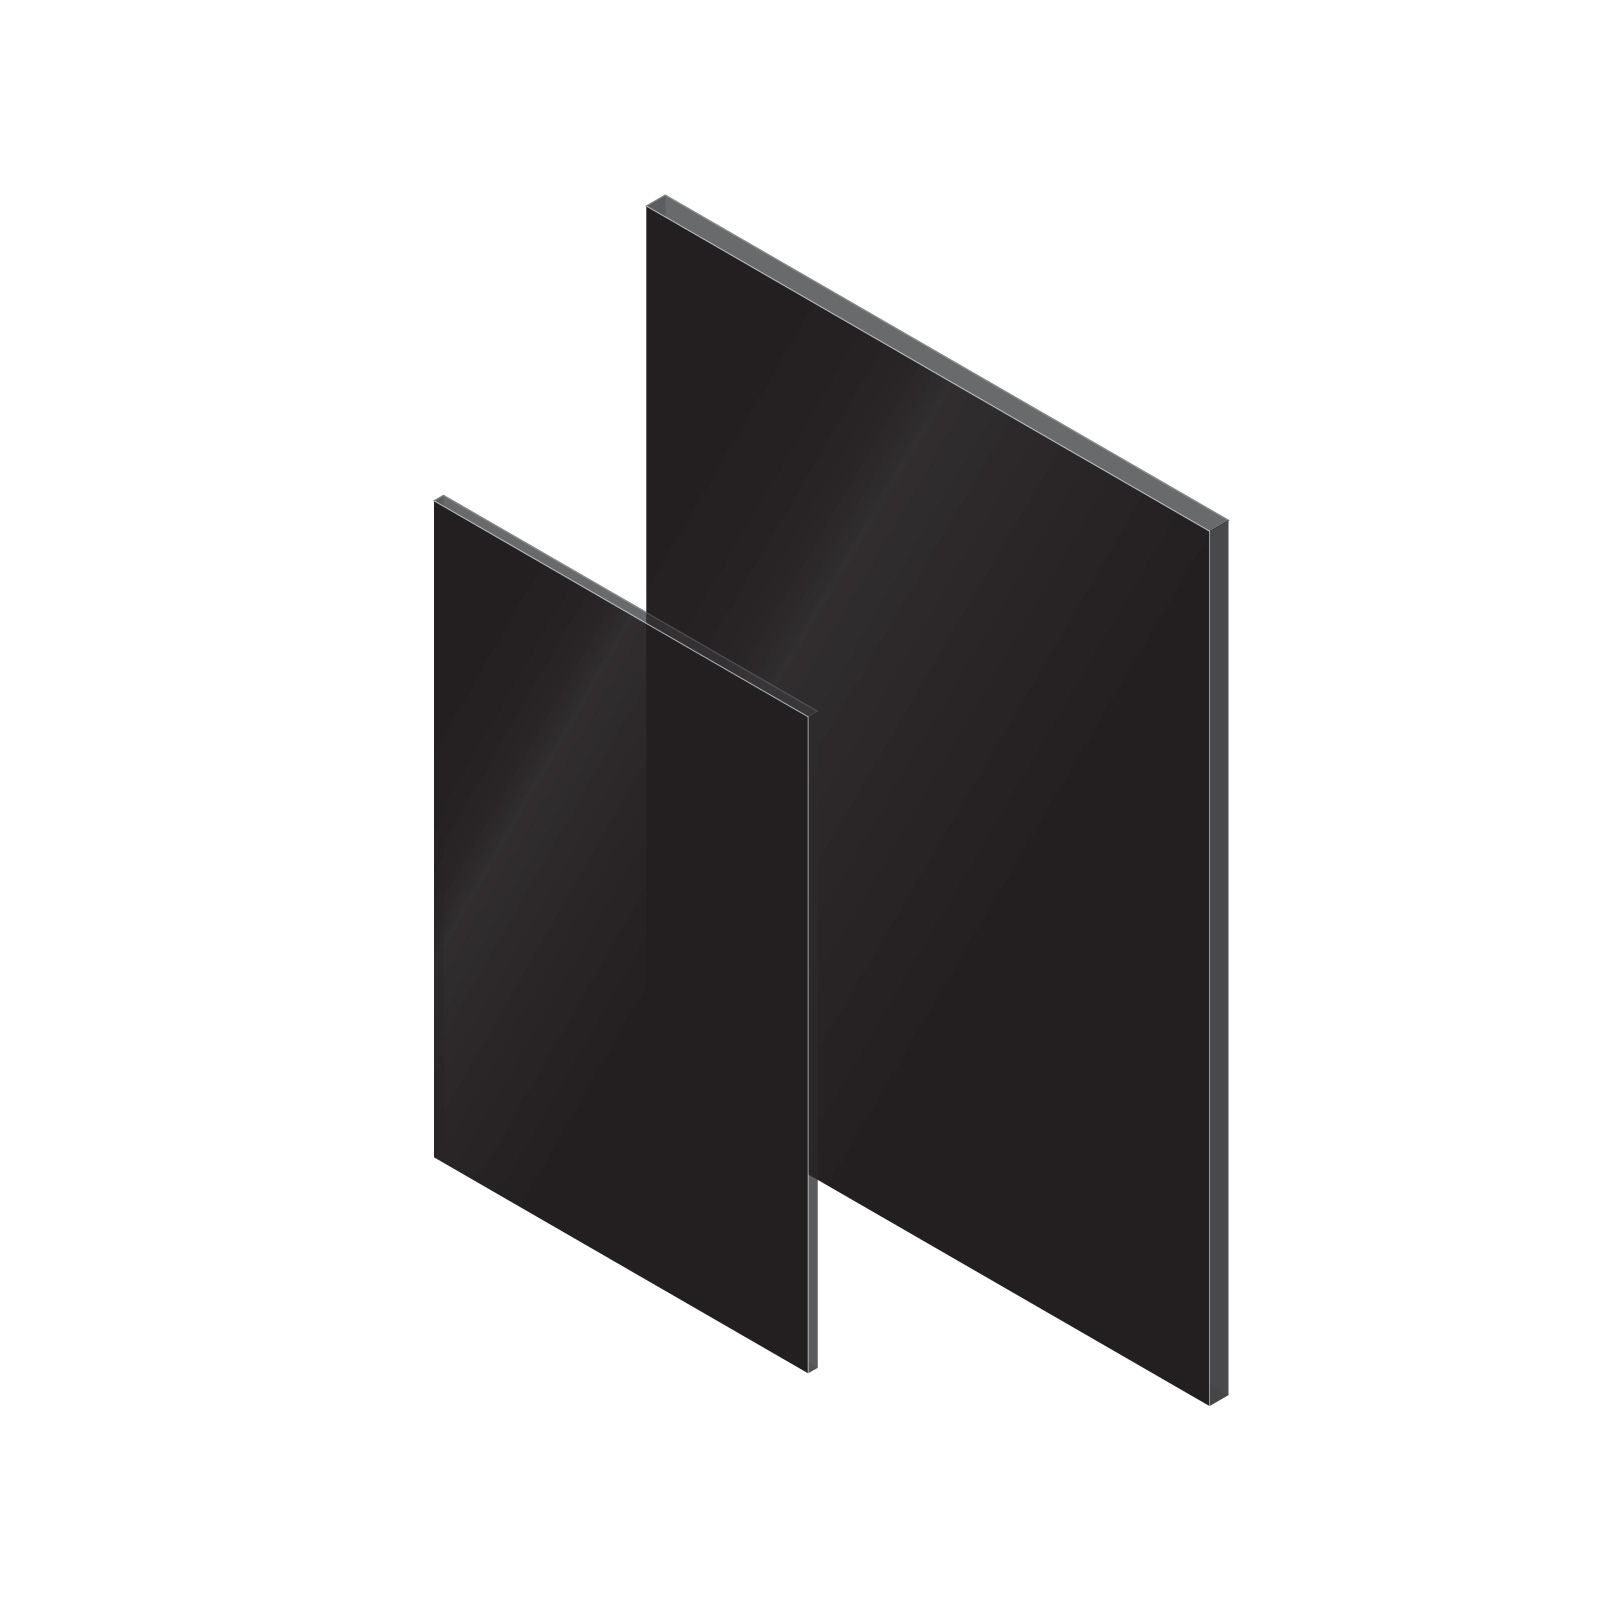 Black Axgard Solid Polycarbonate Sheet Solid